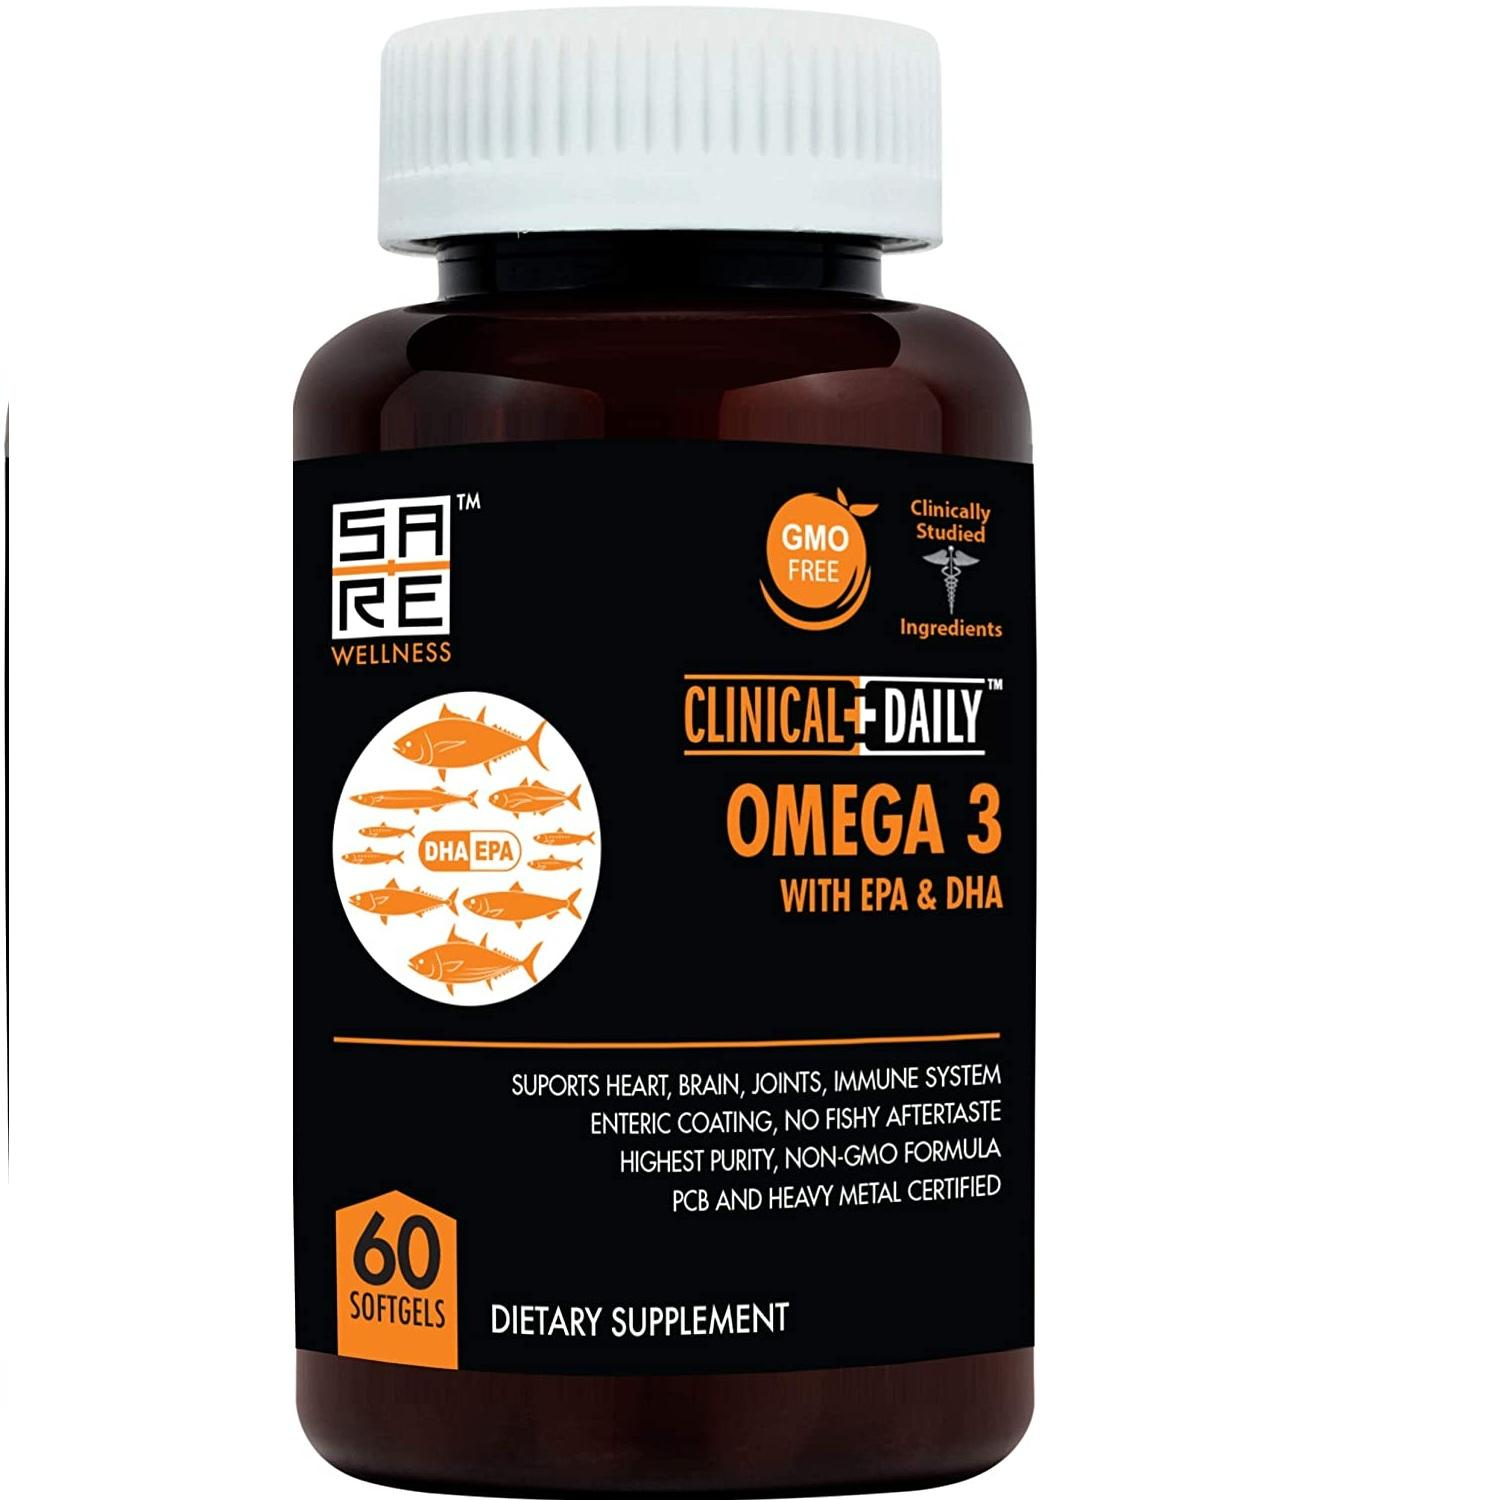 Pure Natural Fish Oil Omega 3 DHA EPA 1000 mg. Advanced Formula for Heart.60 Non GMO Softgel Capsules for Women and Men